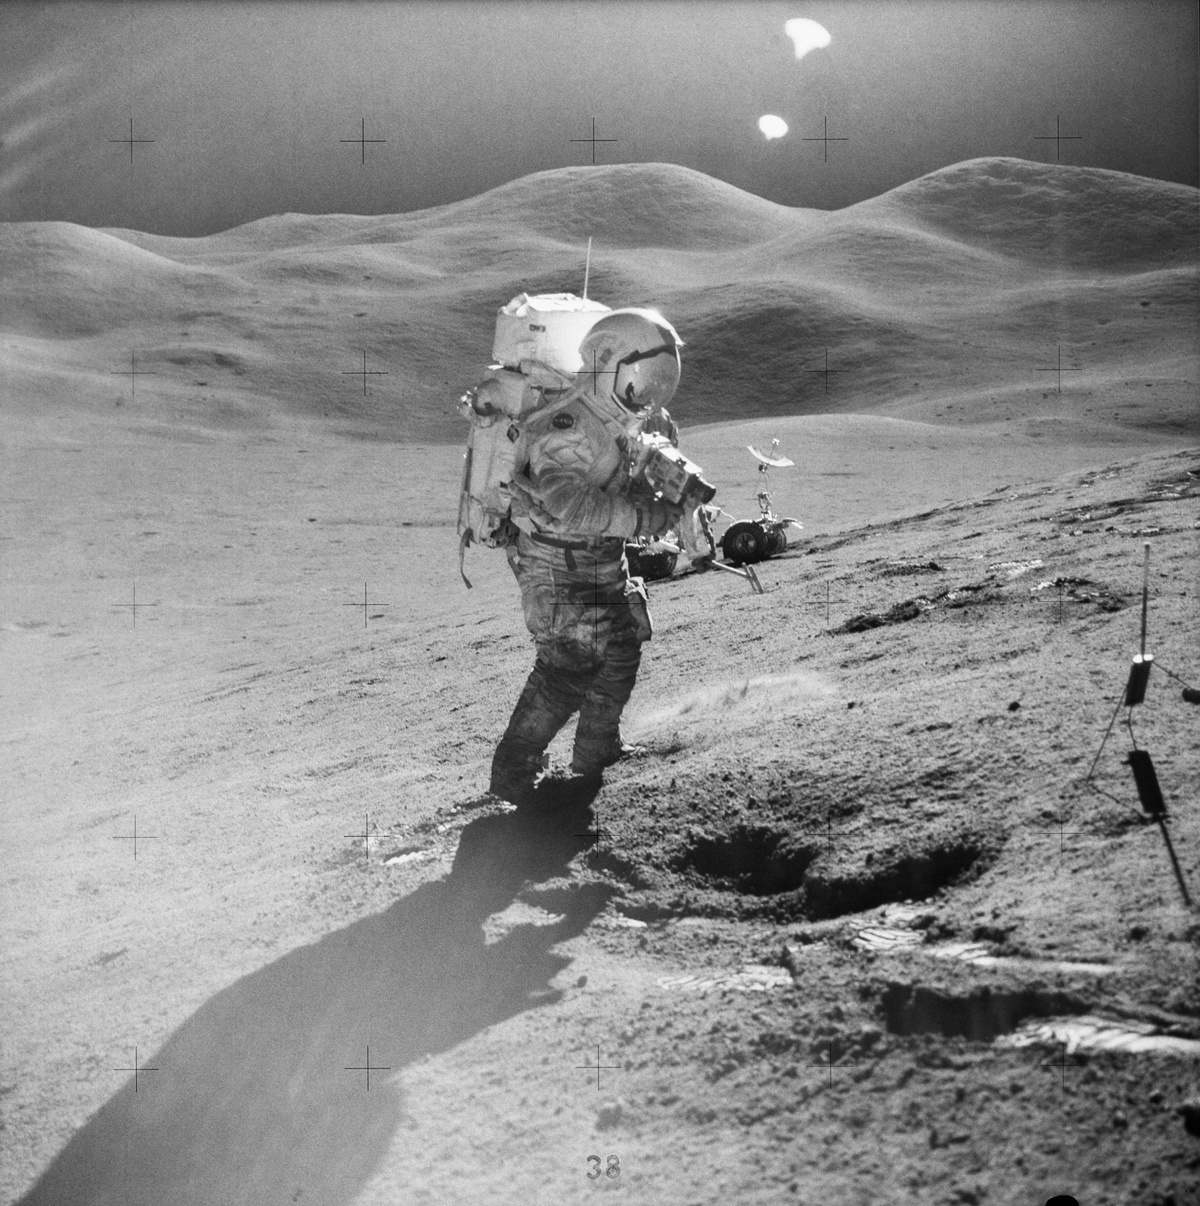 Astronaut photographing the lunar surface